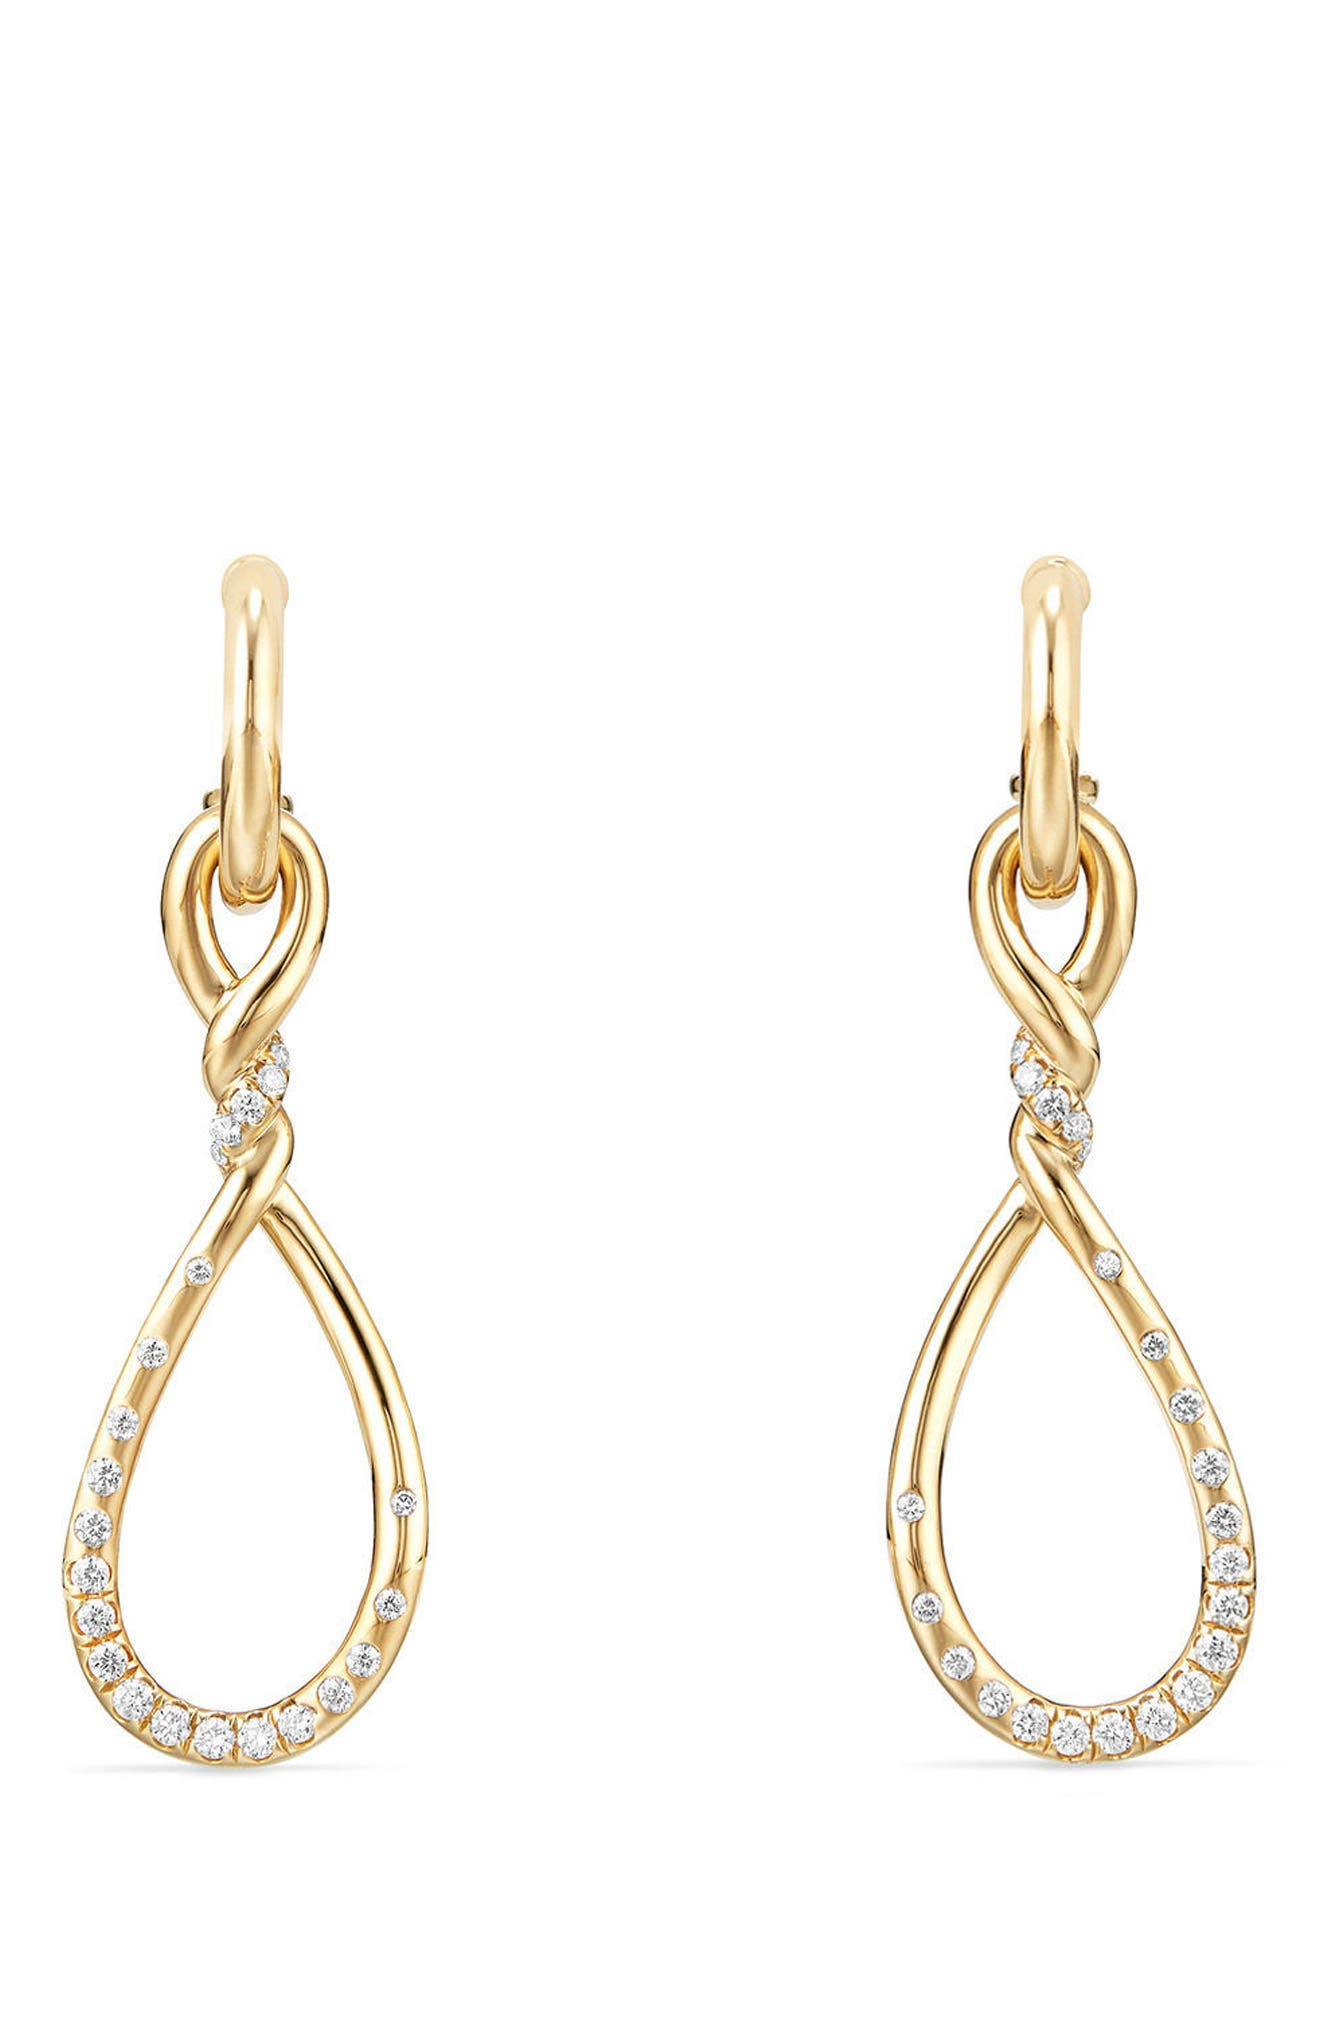 Continuance Medium Drop Earrings with Diamonds in 18K Gold,                             Main thumbnail 1, color,                             710